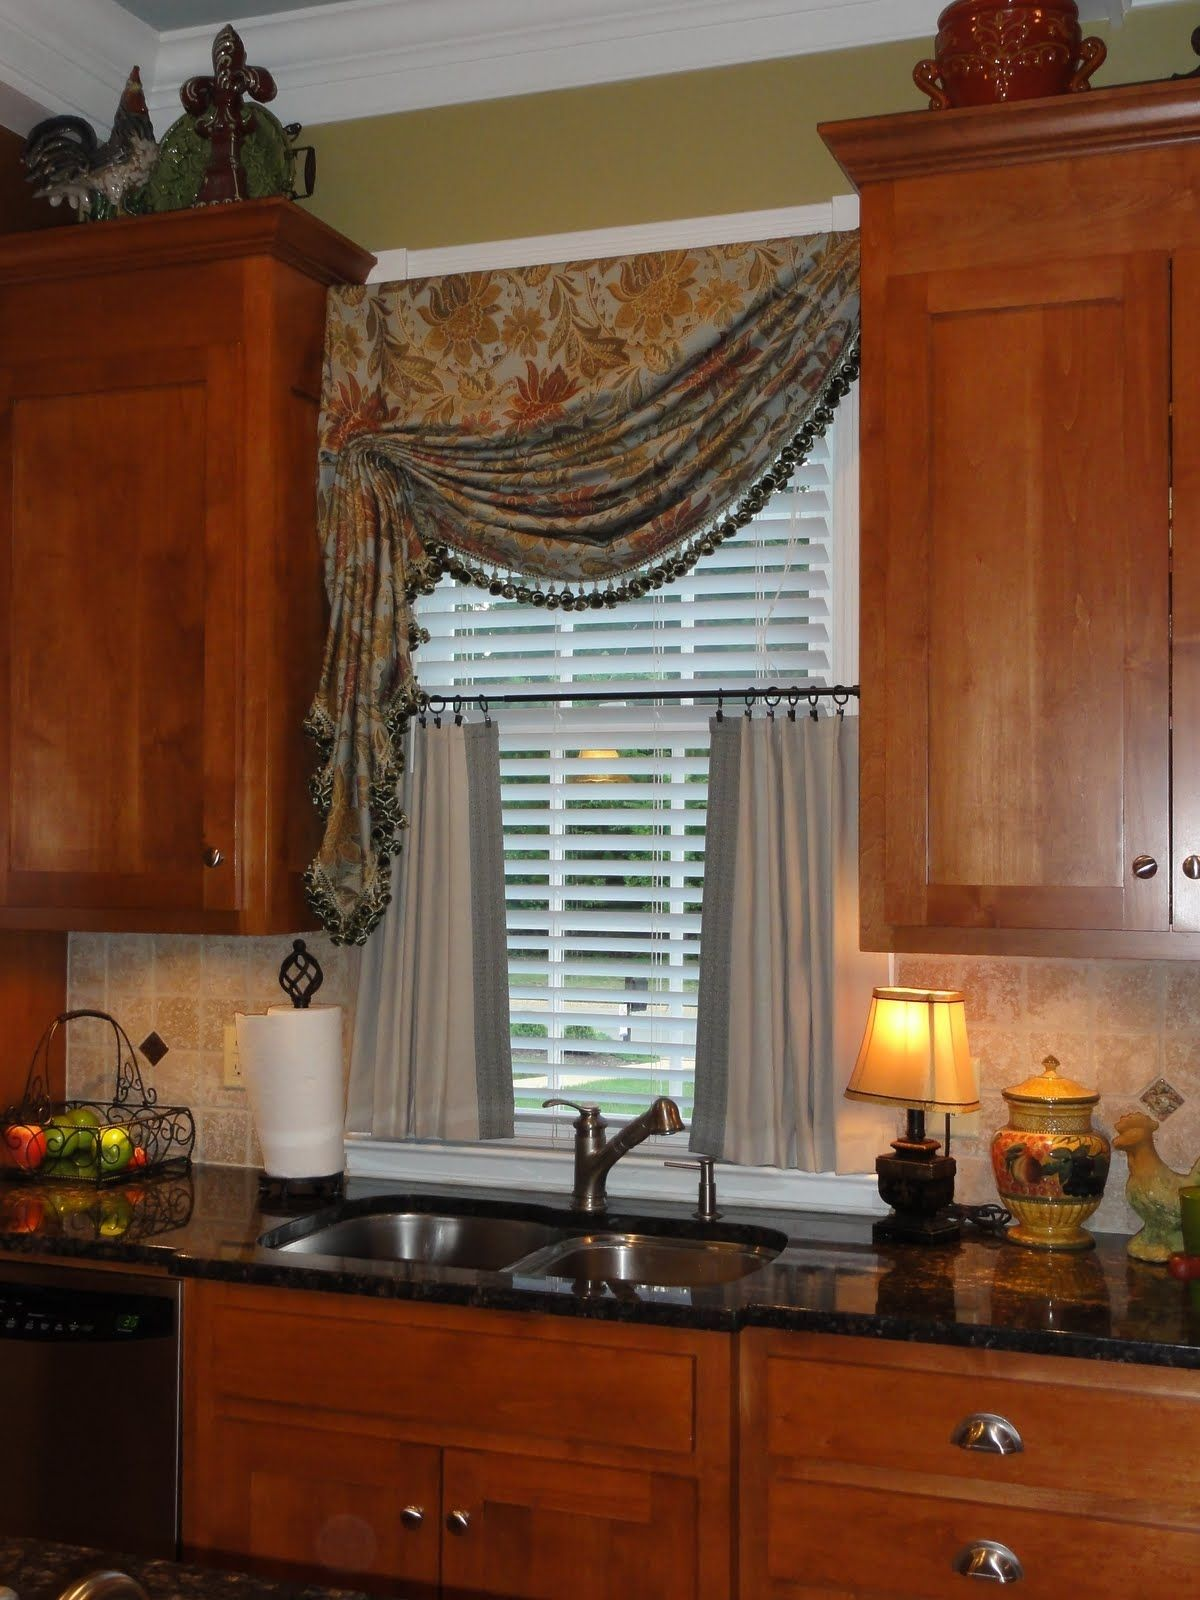 Unique Kitchen Window Coverings  The Kitchen Window Treatments Stunning Unique Kitchen Curtains Decorating Inspiration